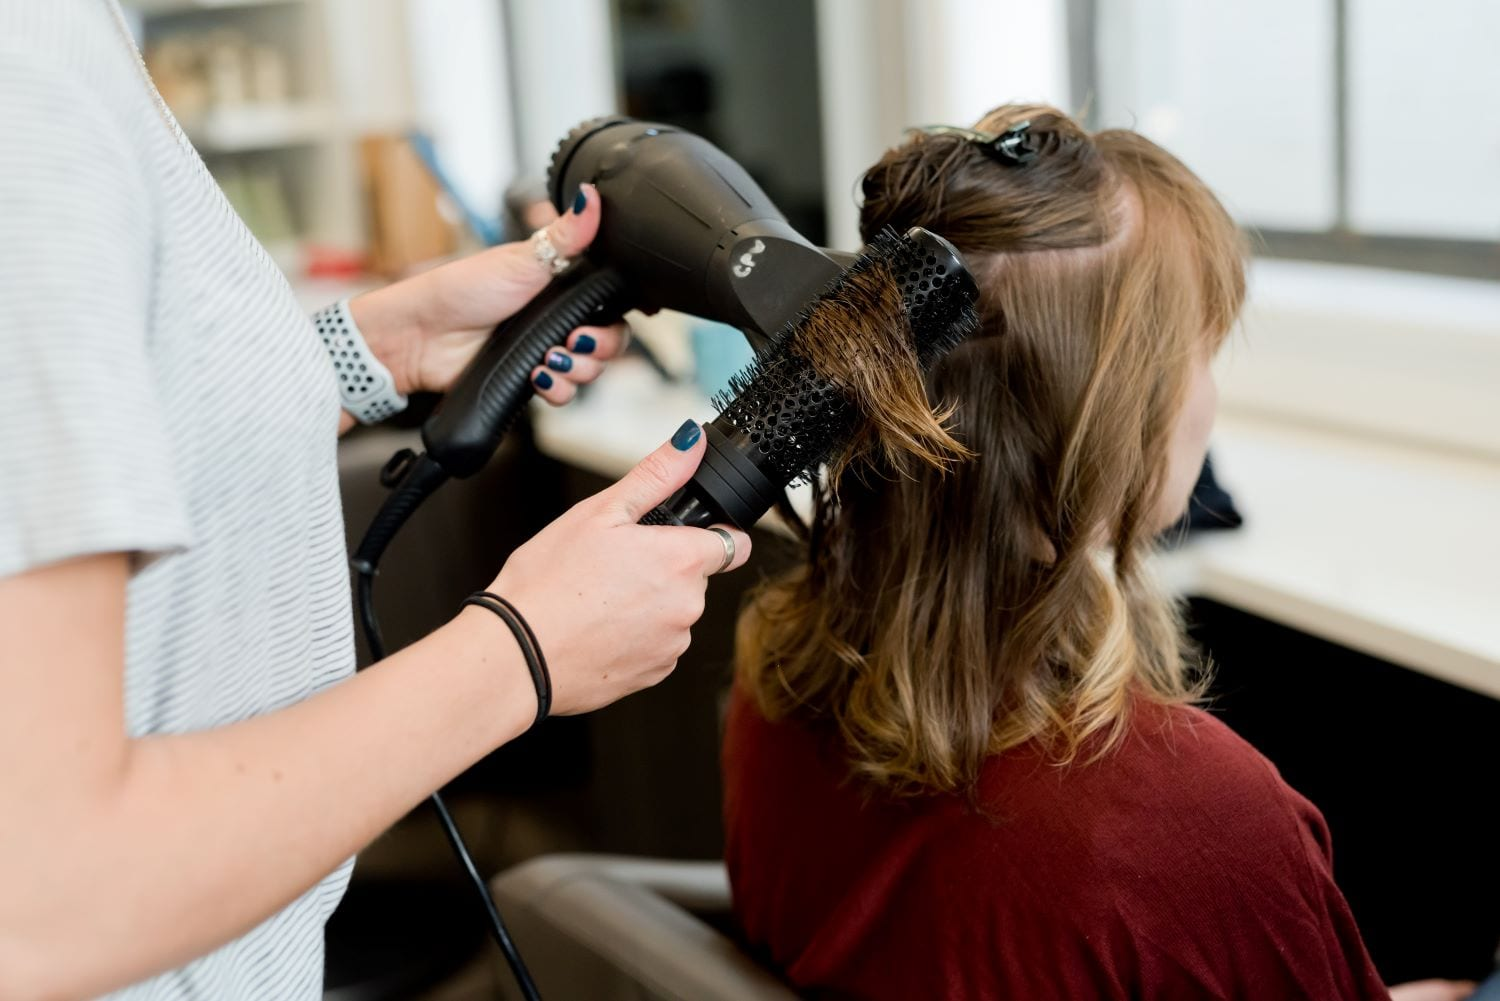 Dublin City Hair Salons to Book when Restrictions Lift